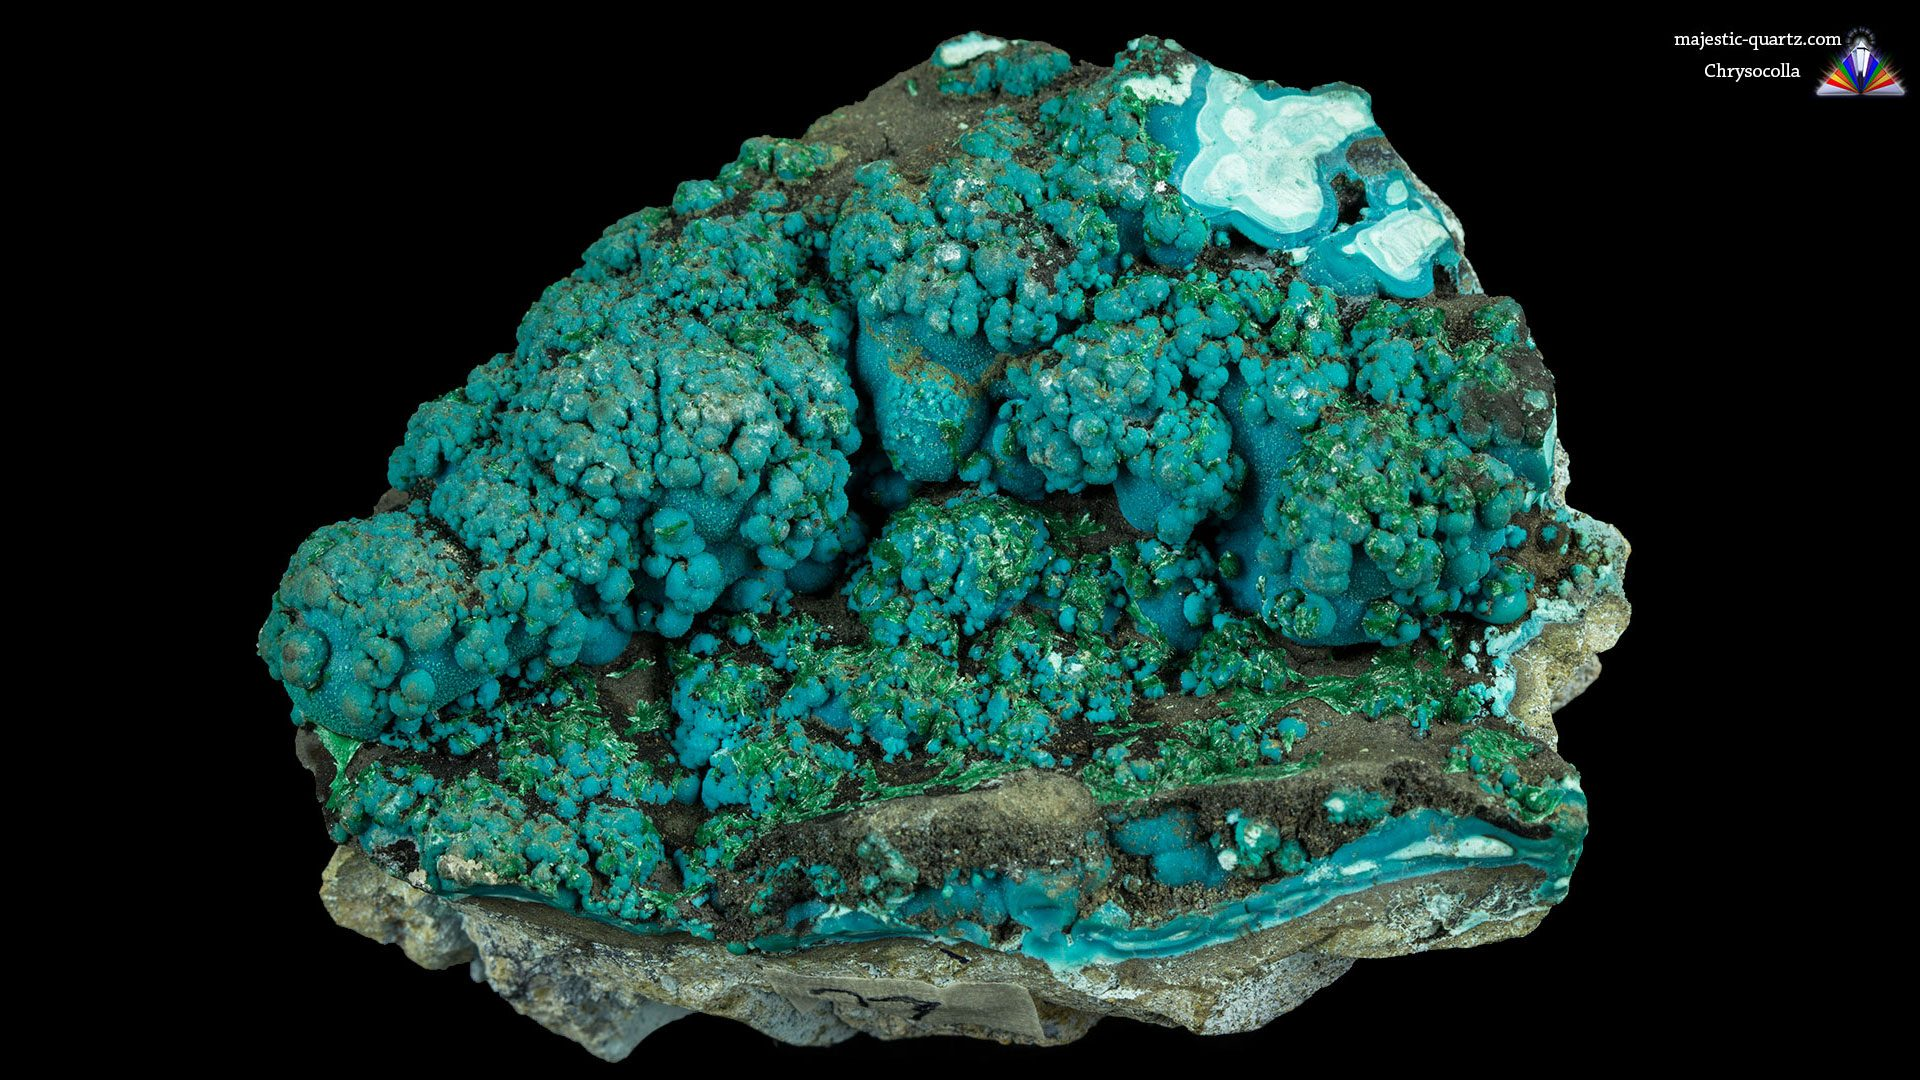 Chrysocolla Crystal Specimen - Photograph by Anthony Bradford